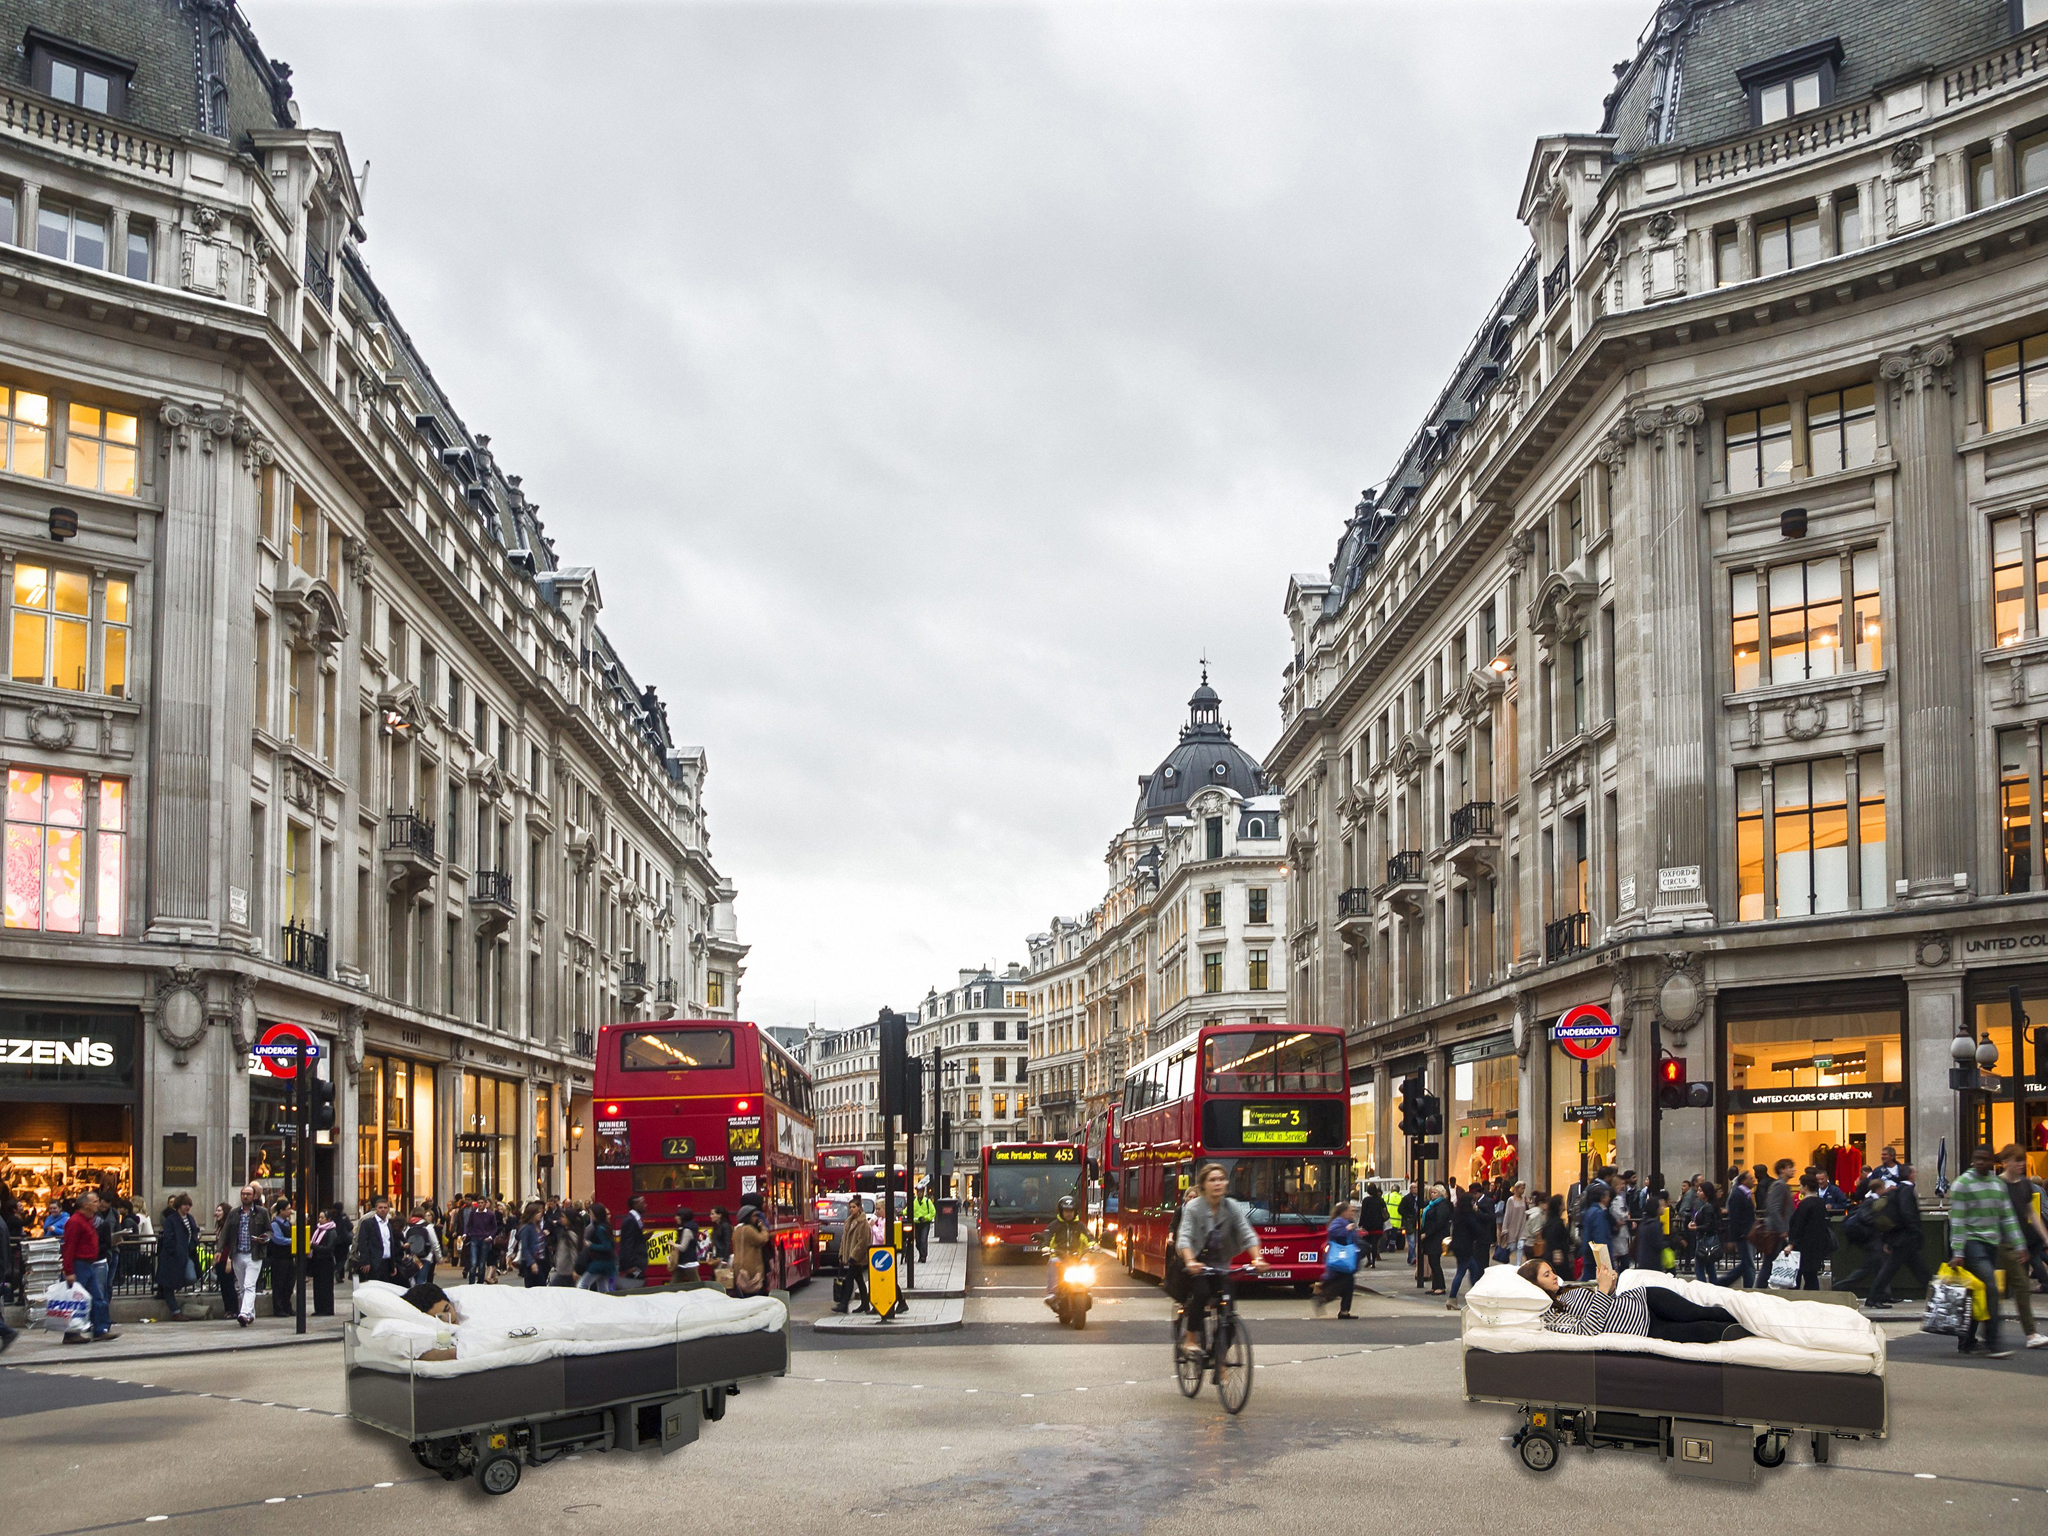 oxford street hd - photo #4